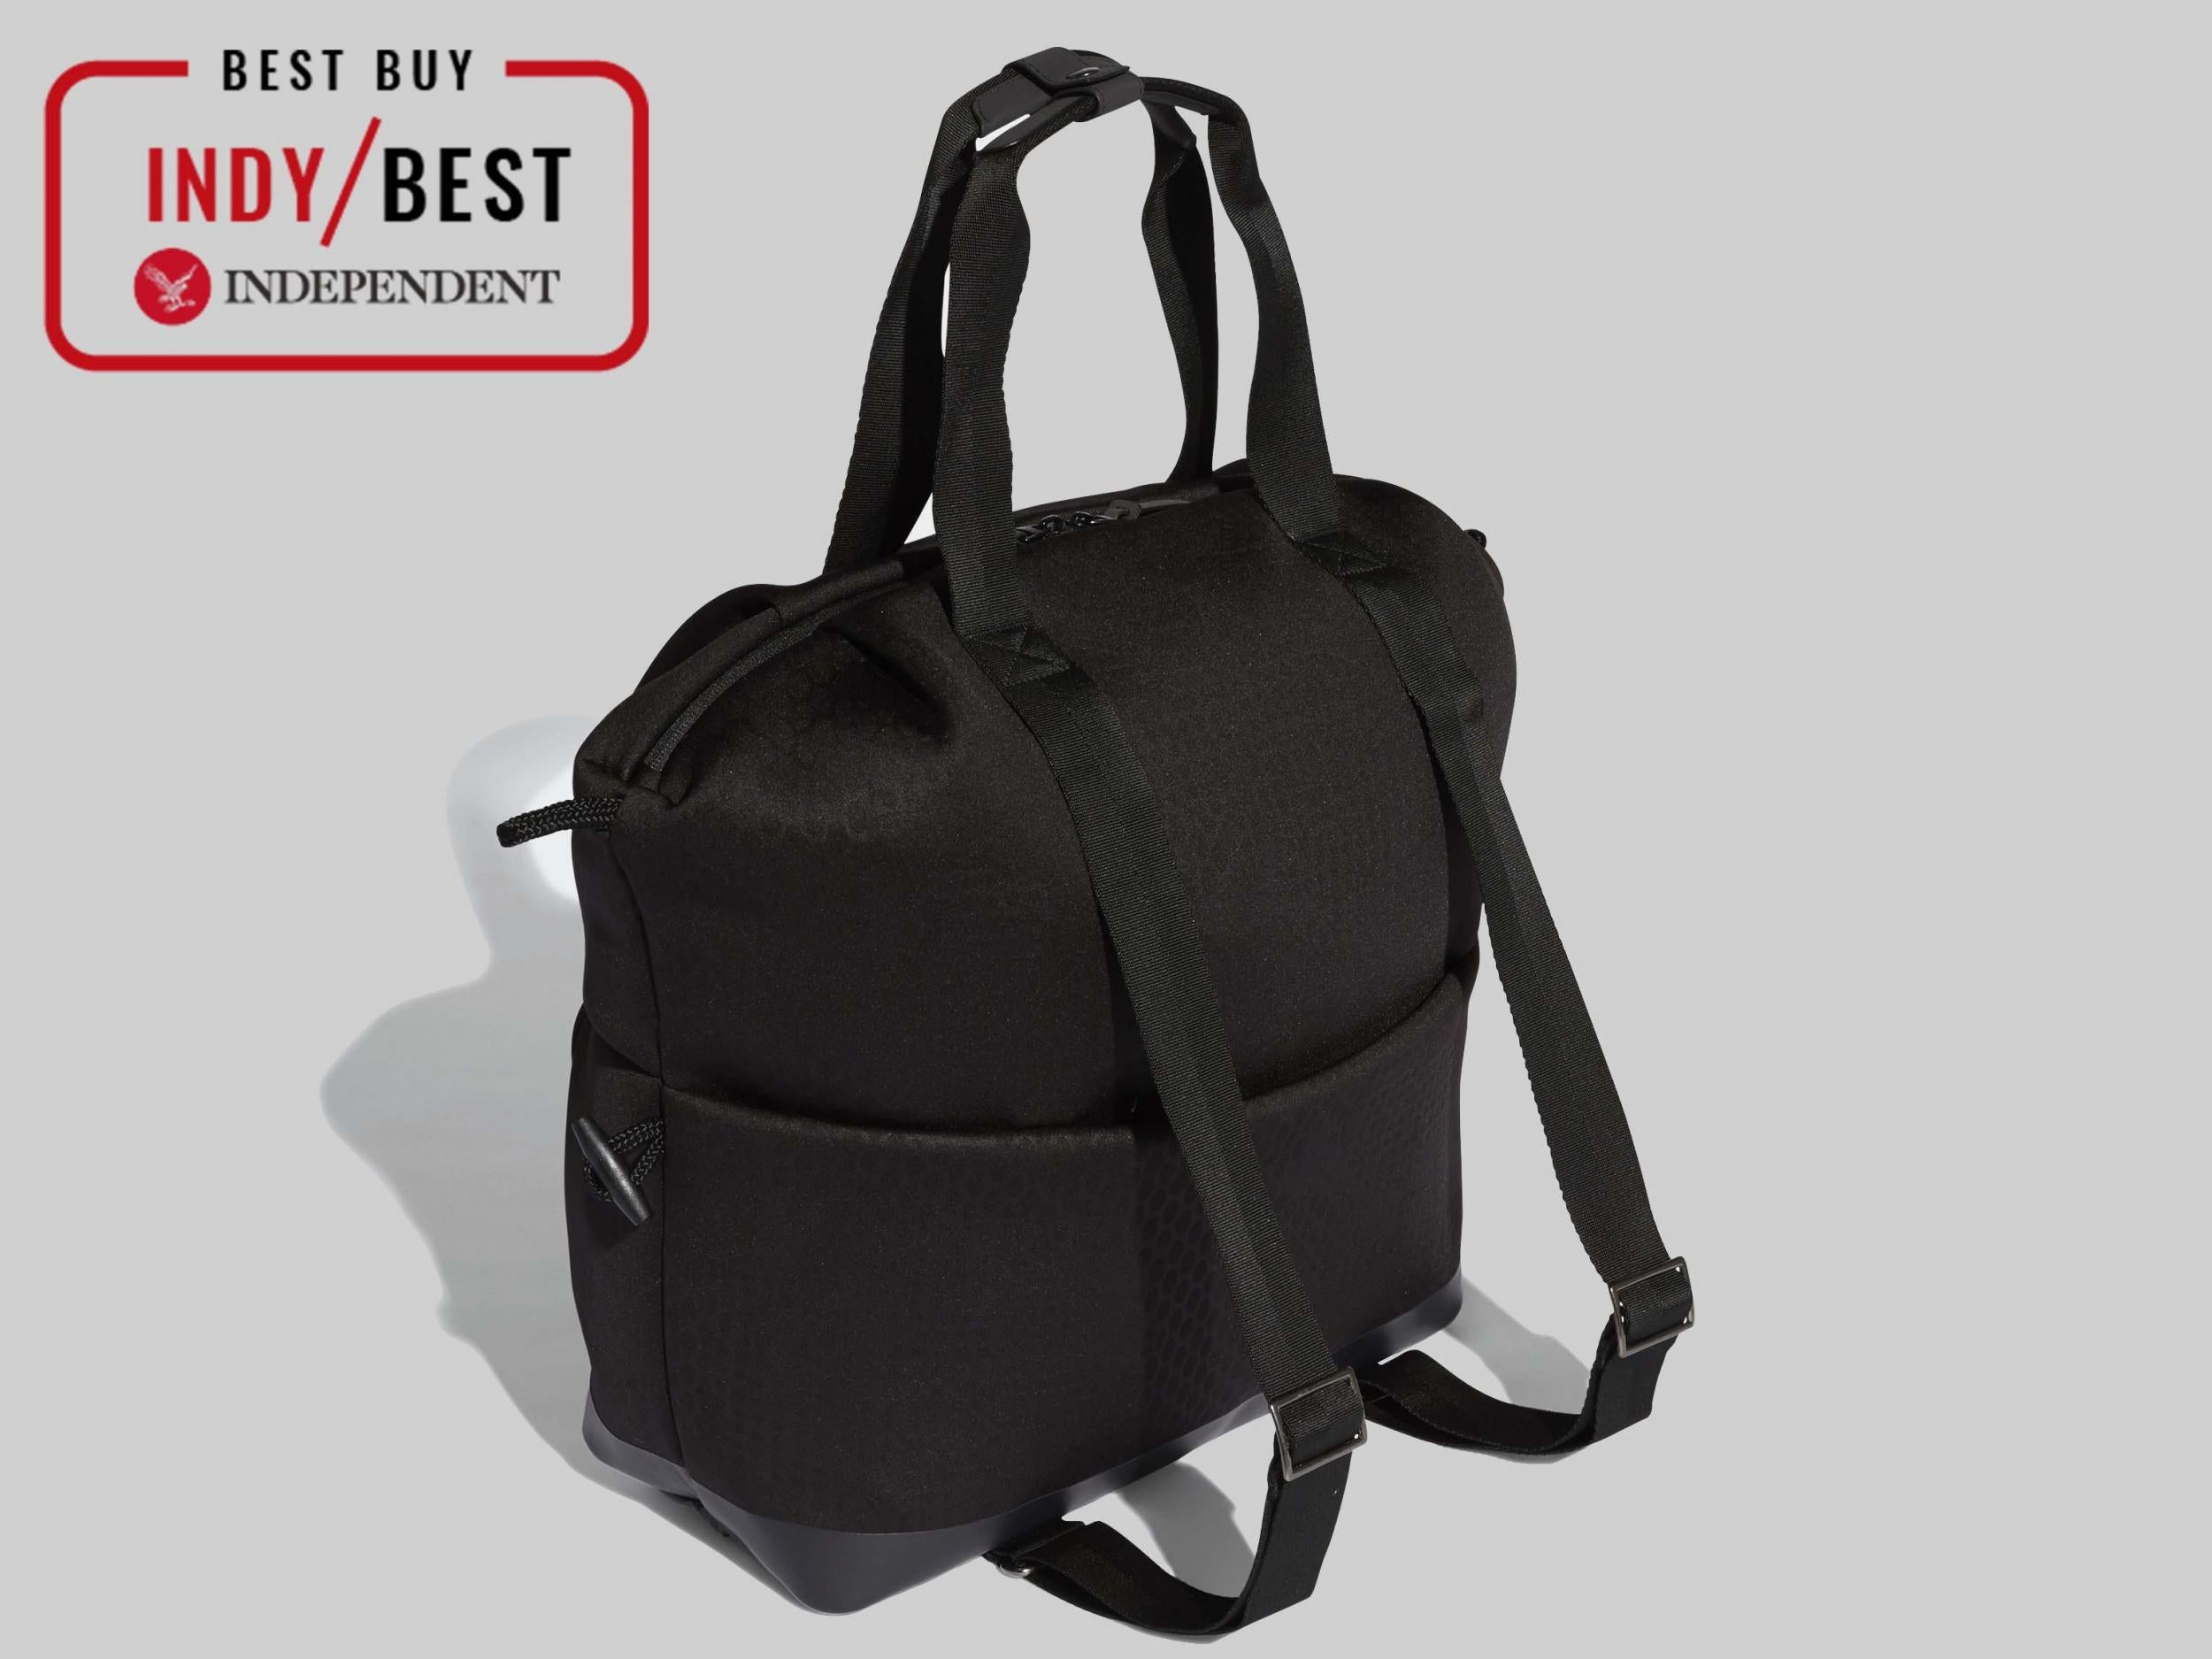 440b97ed56 11 best gym bags for women | The Independent